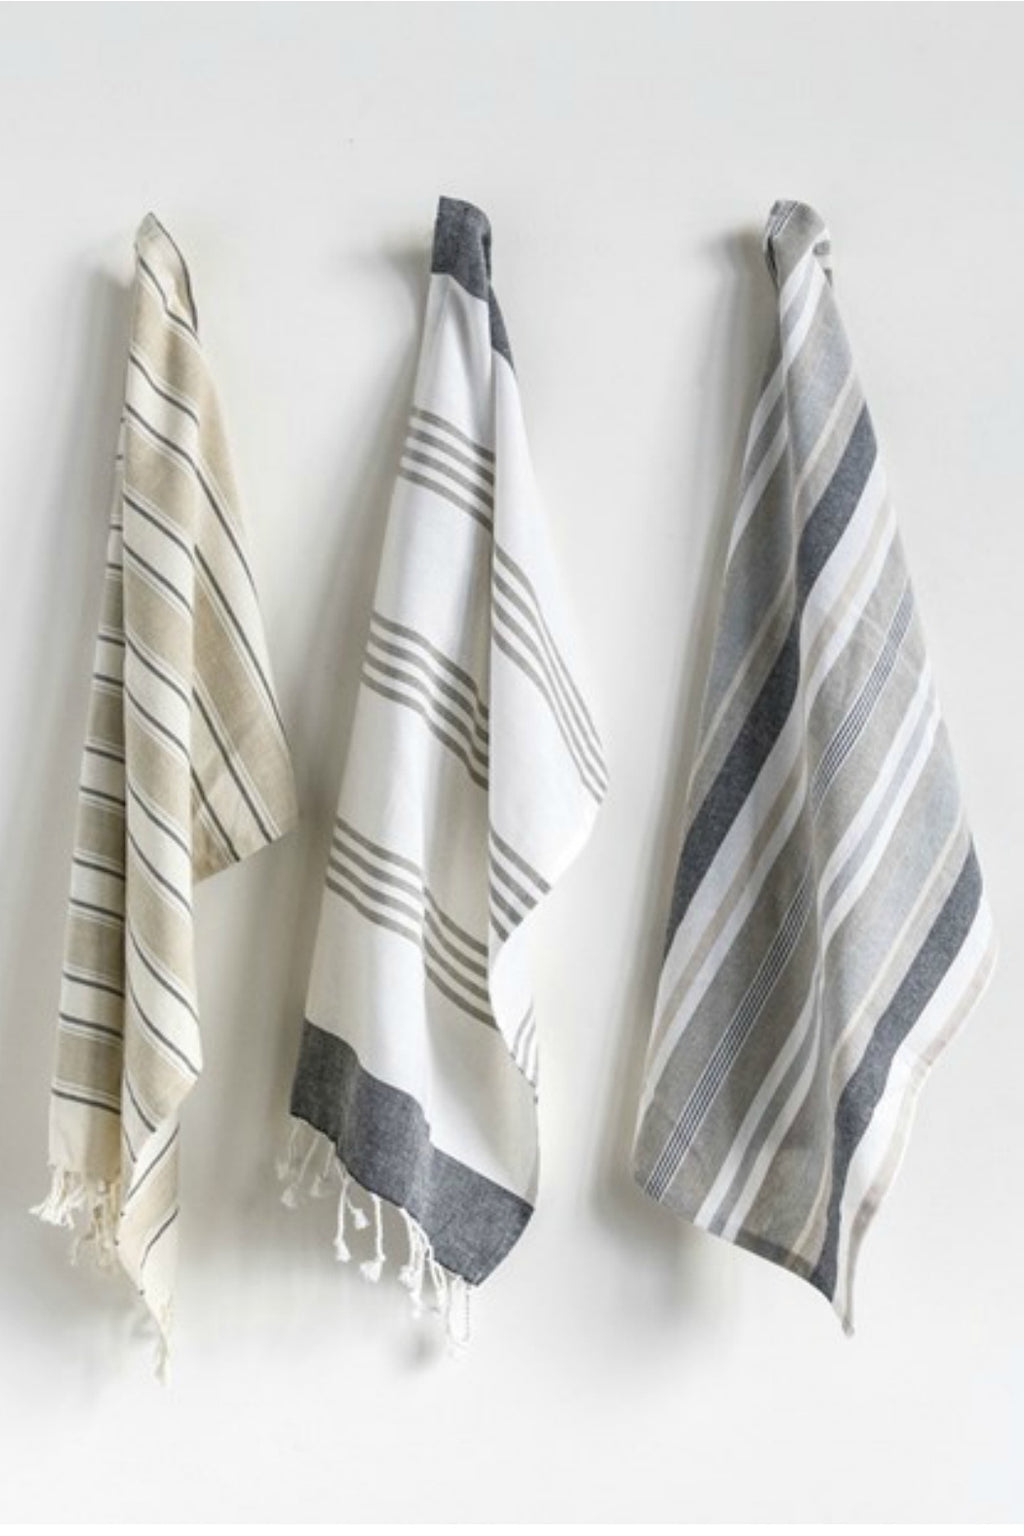 Creative Co-Op Cotton Striped Tea Towels, Set of 3